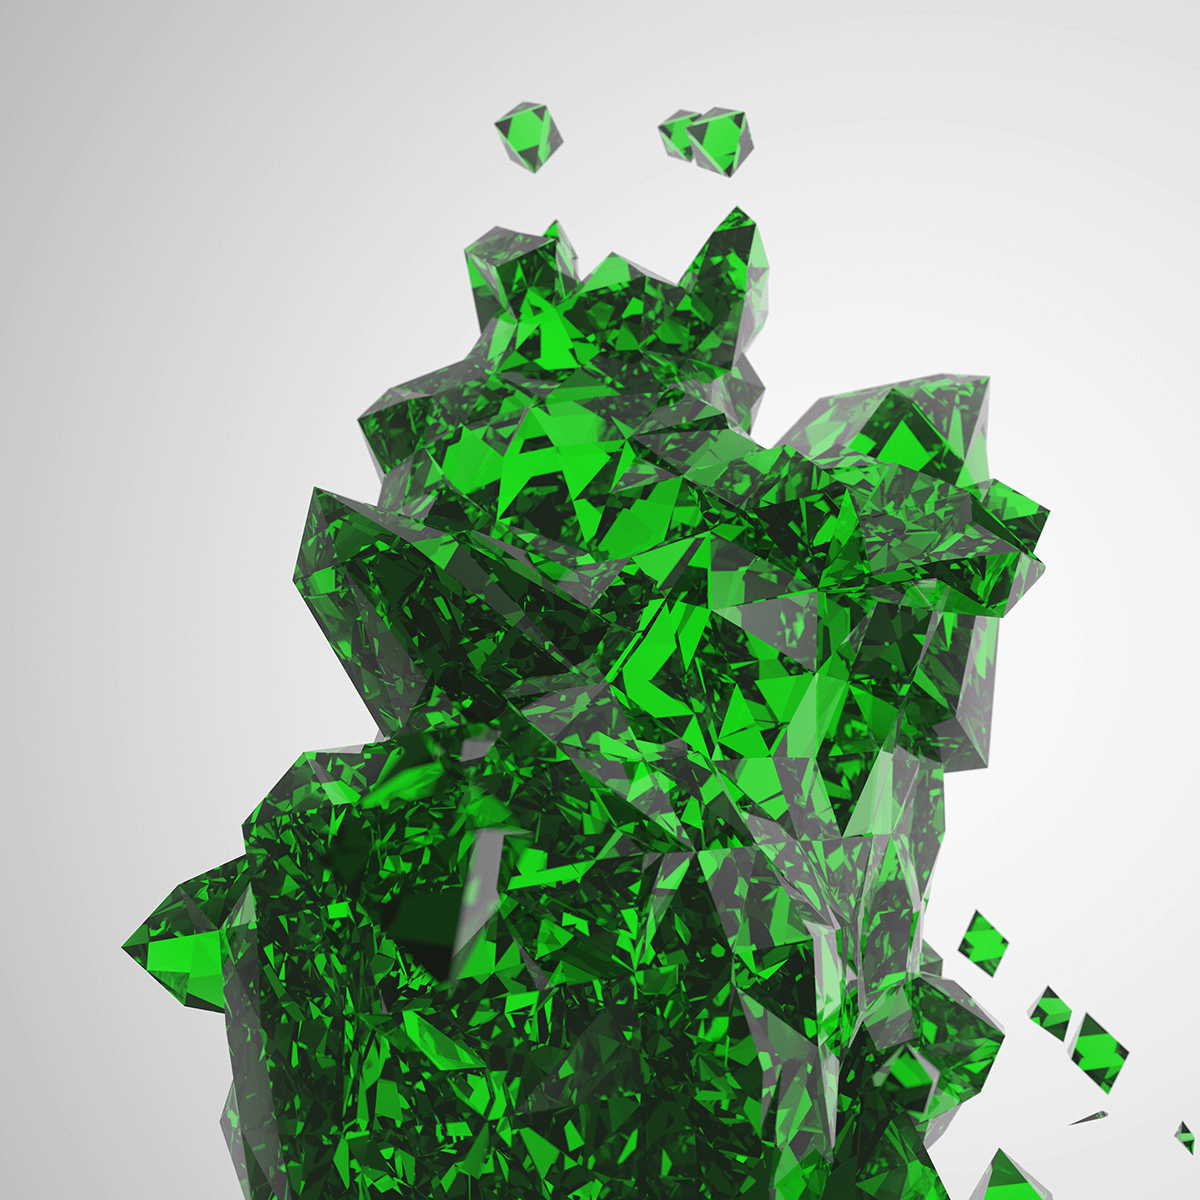 3D render of diamond structure with an emerald color